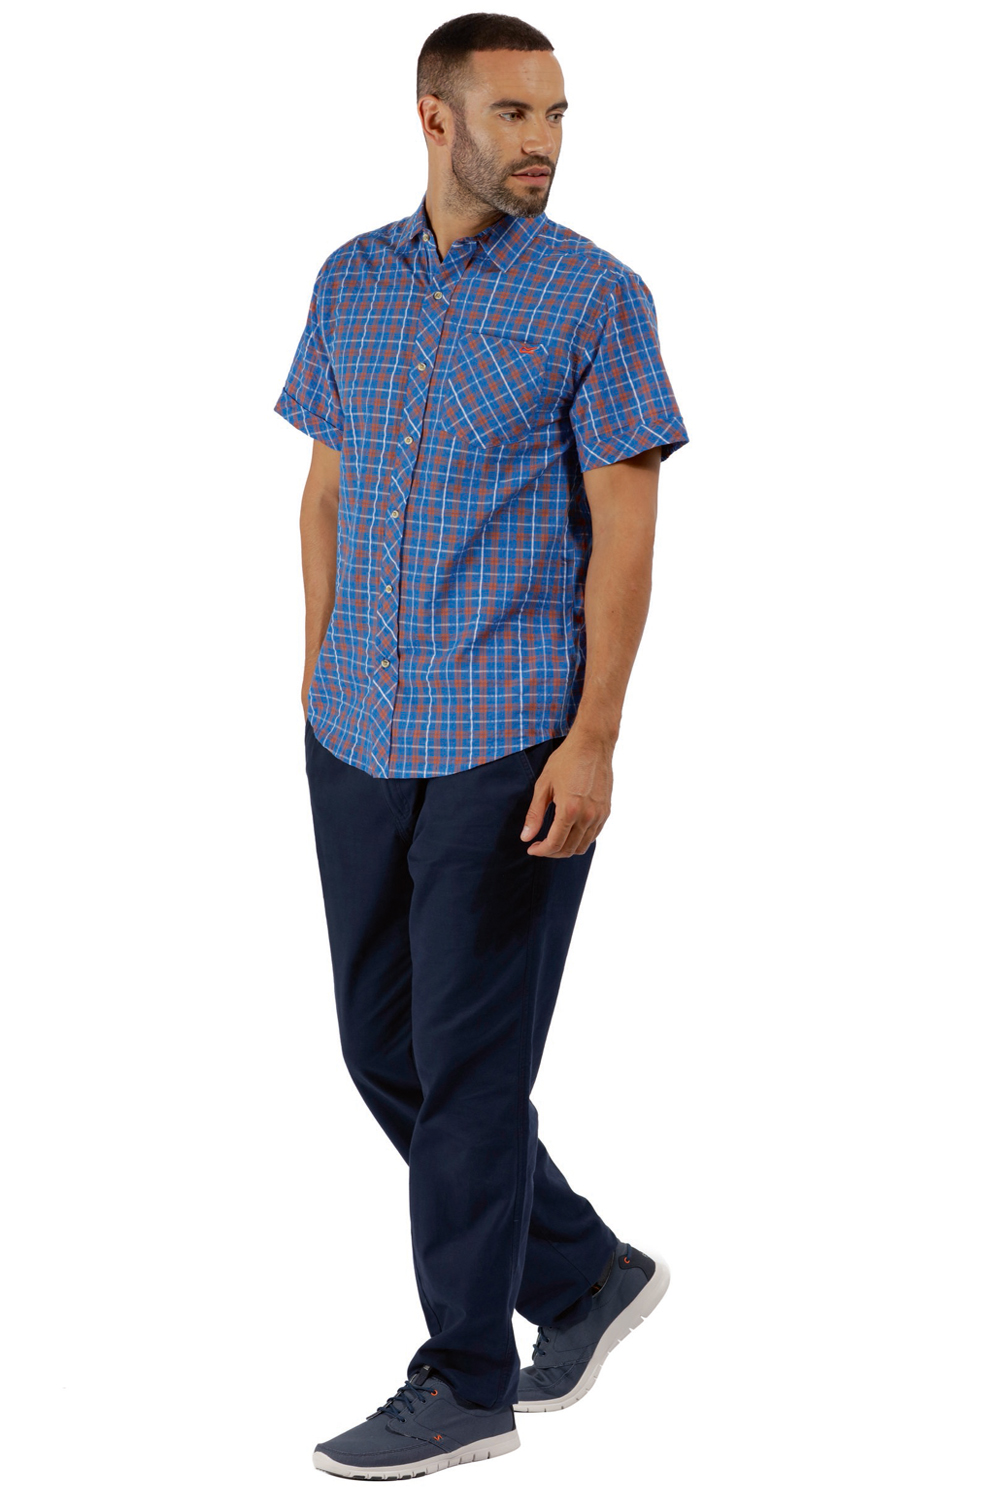 Regatta-Mens-Deakin-II-Coolweave-Cotton-Short-Sleeved-Summer-Check-Shirt-RRP-50 thumbnail 30